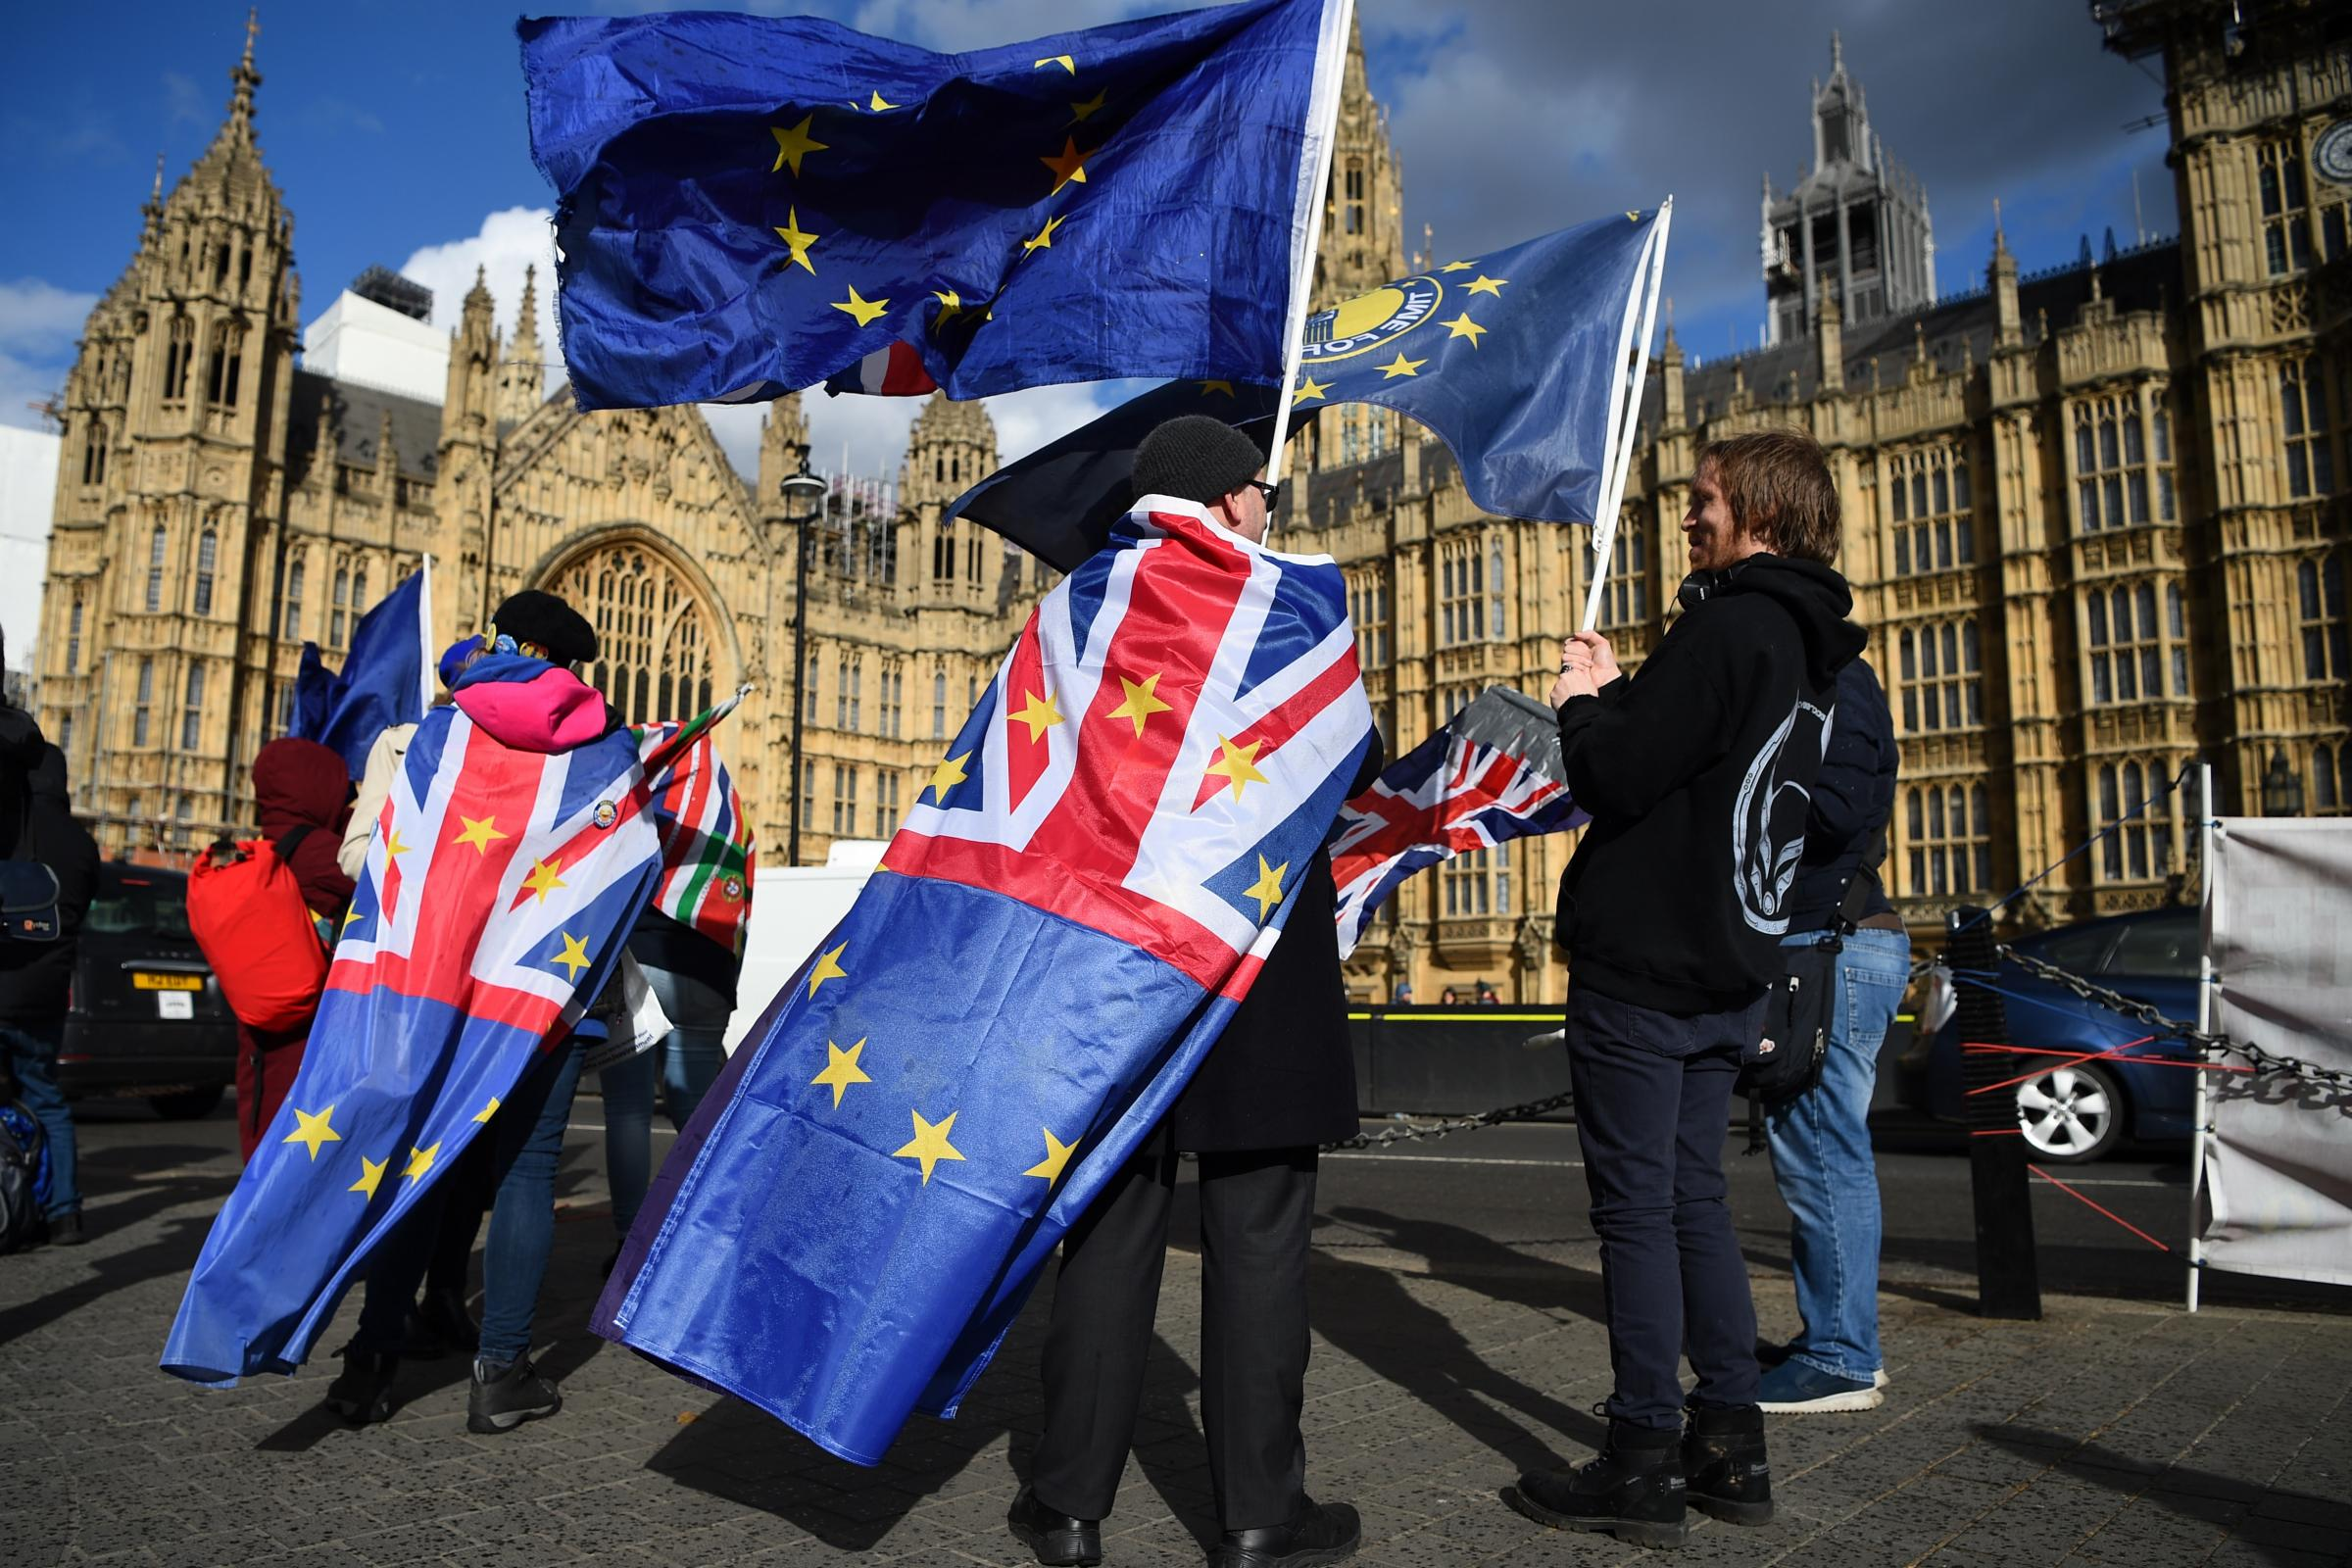 Anti-Brexit supporters outside the Houses of Parliament, as MPs vote to delay Brexit beyond the scheduled departure date of March 29